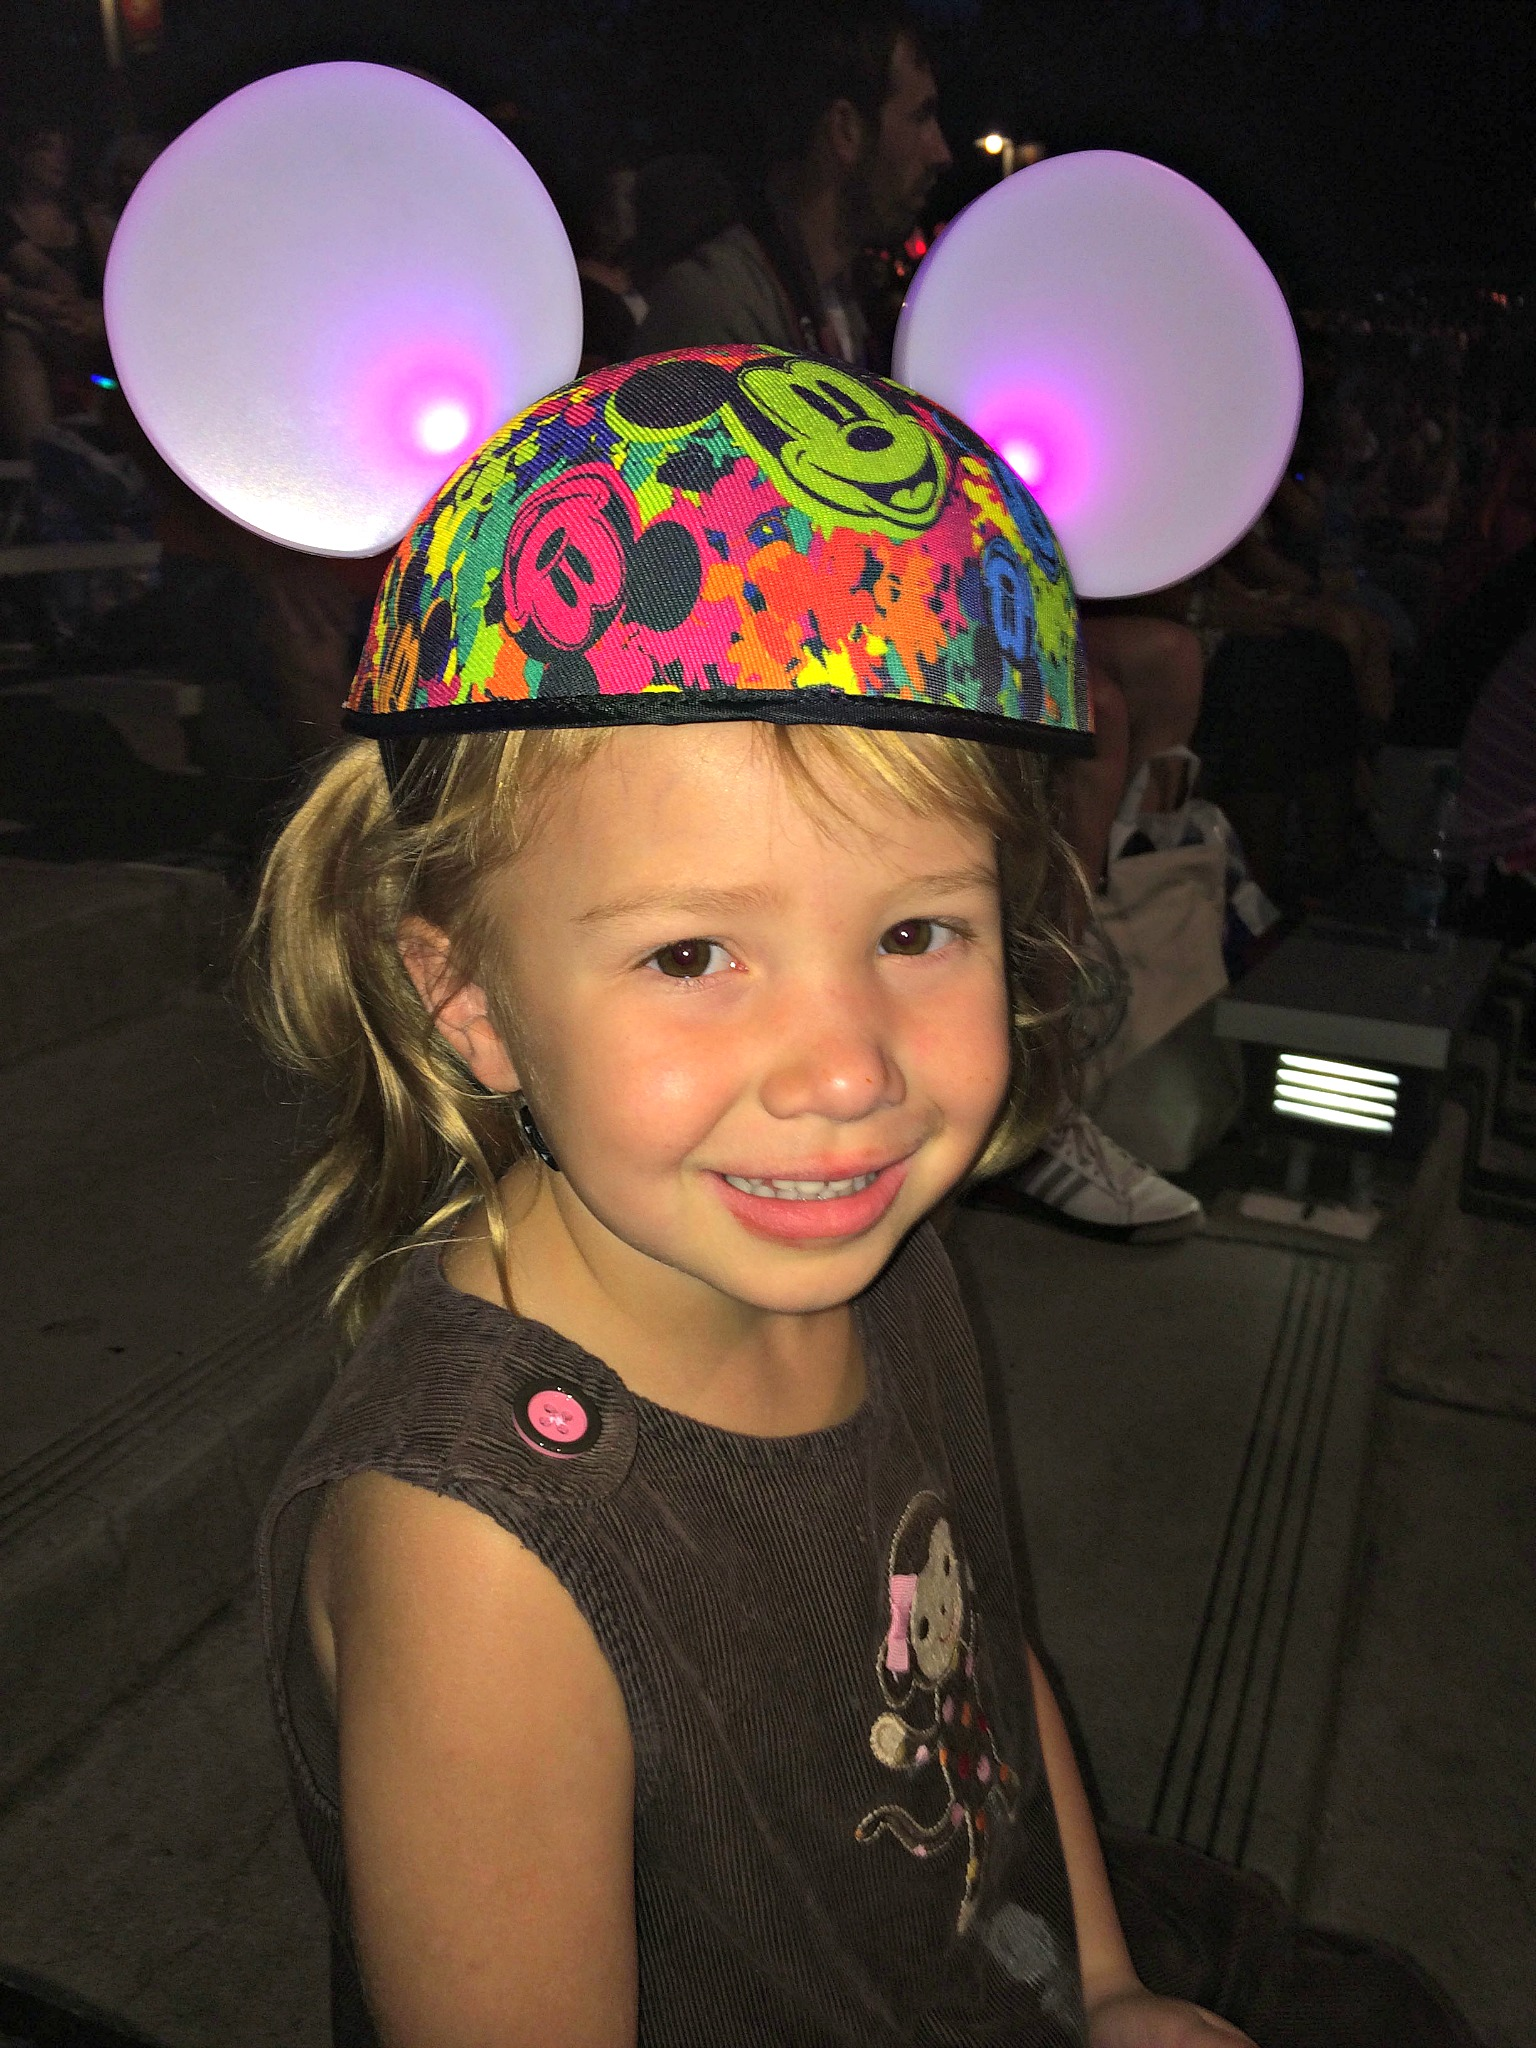 """The lights in these ears """"dance"""" with the music in different shows at Disney World - making you a part of the show."""